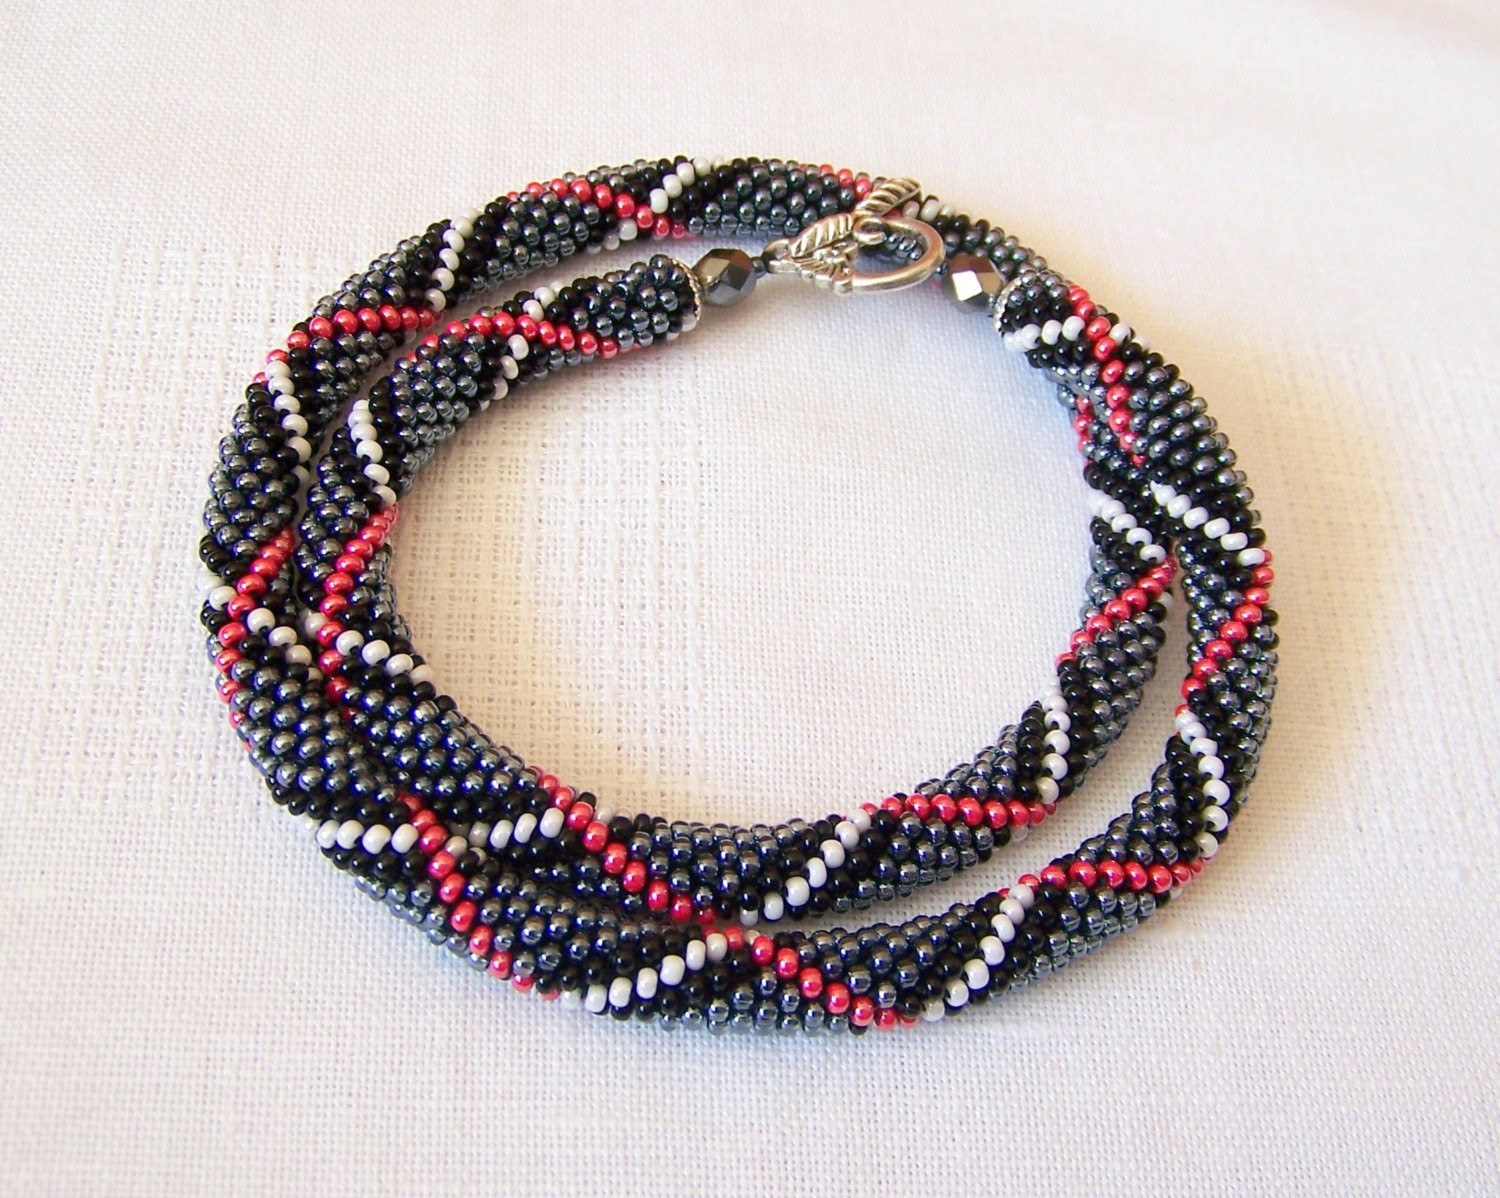 Crochet with Beads Luxury Beads Crochet Ropes Necklace Beadwork Seed Beads Jewelry Of Amazing 50 Models Crochet with Beads